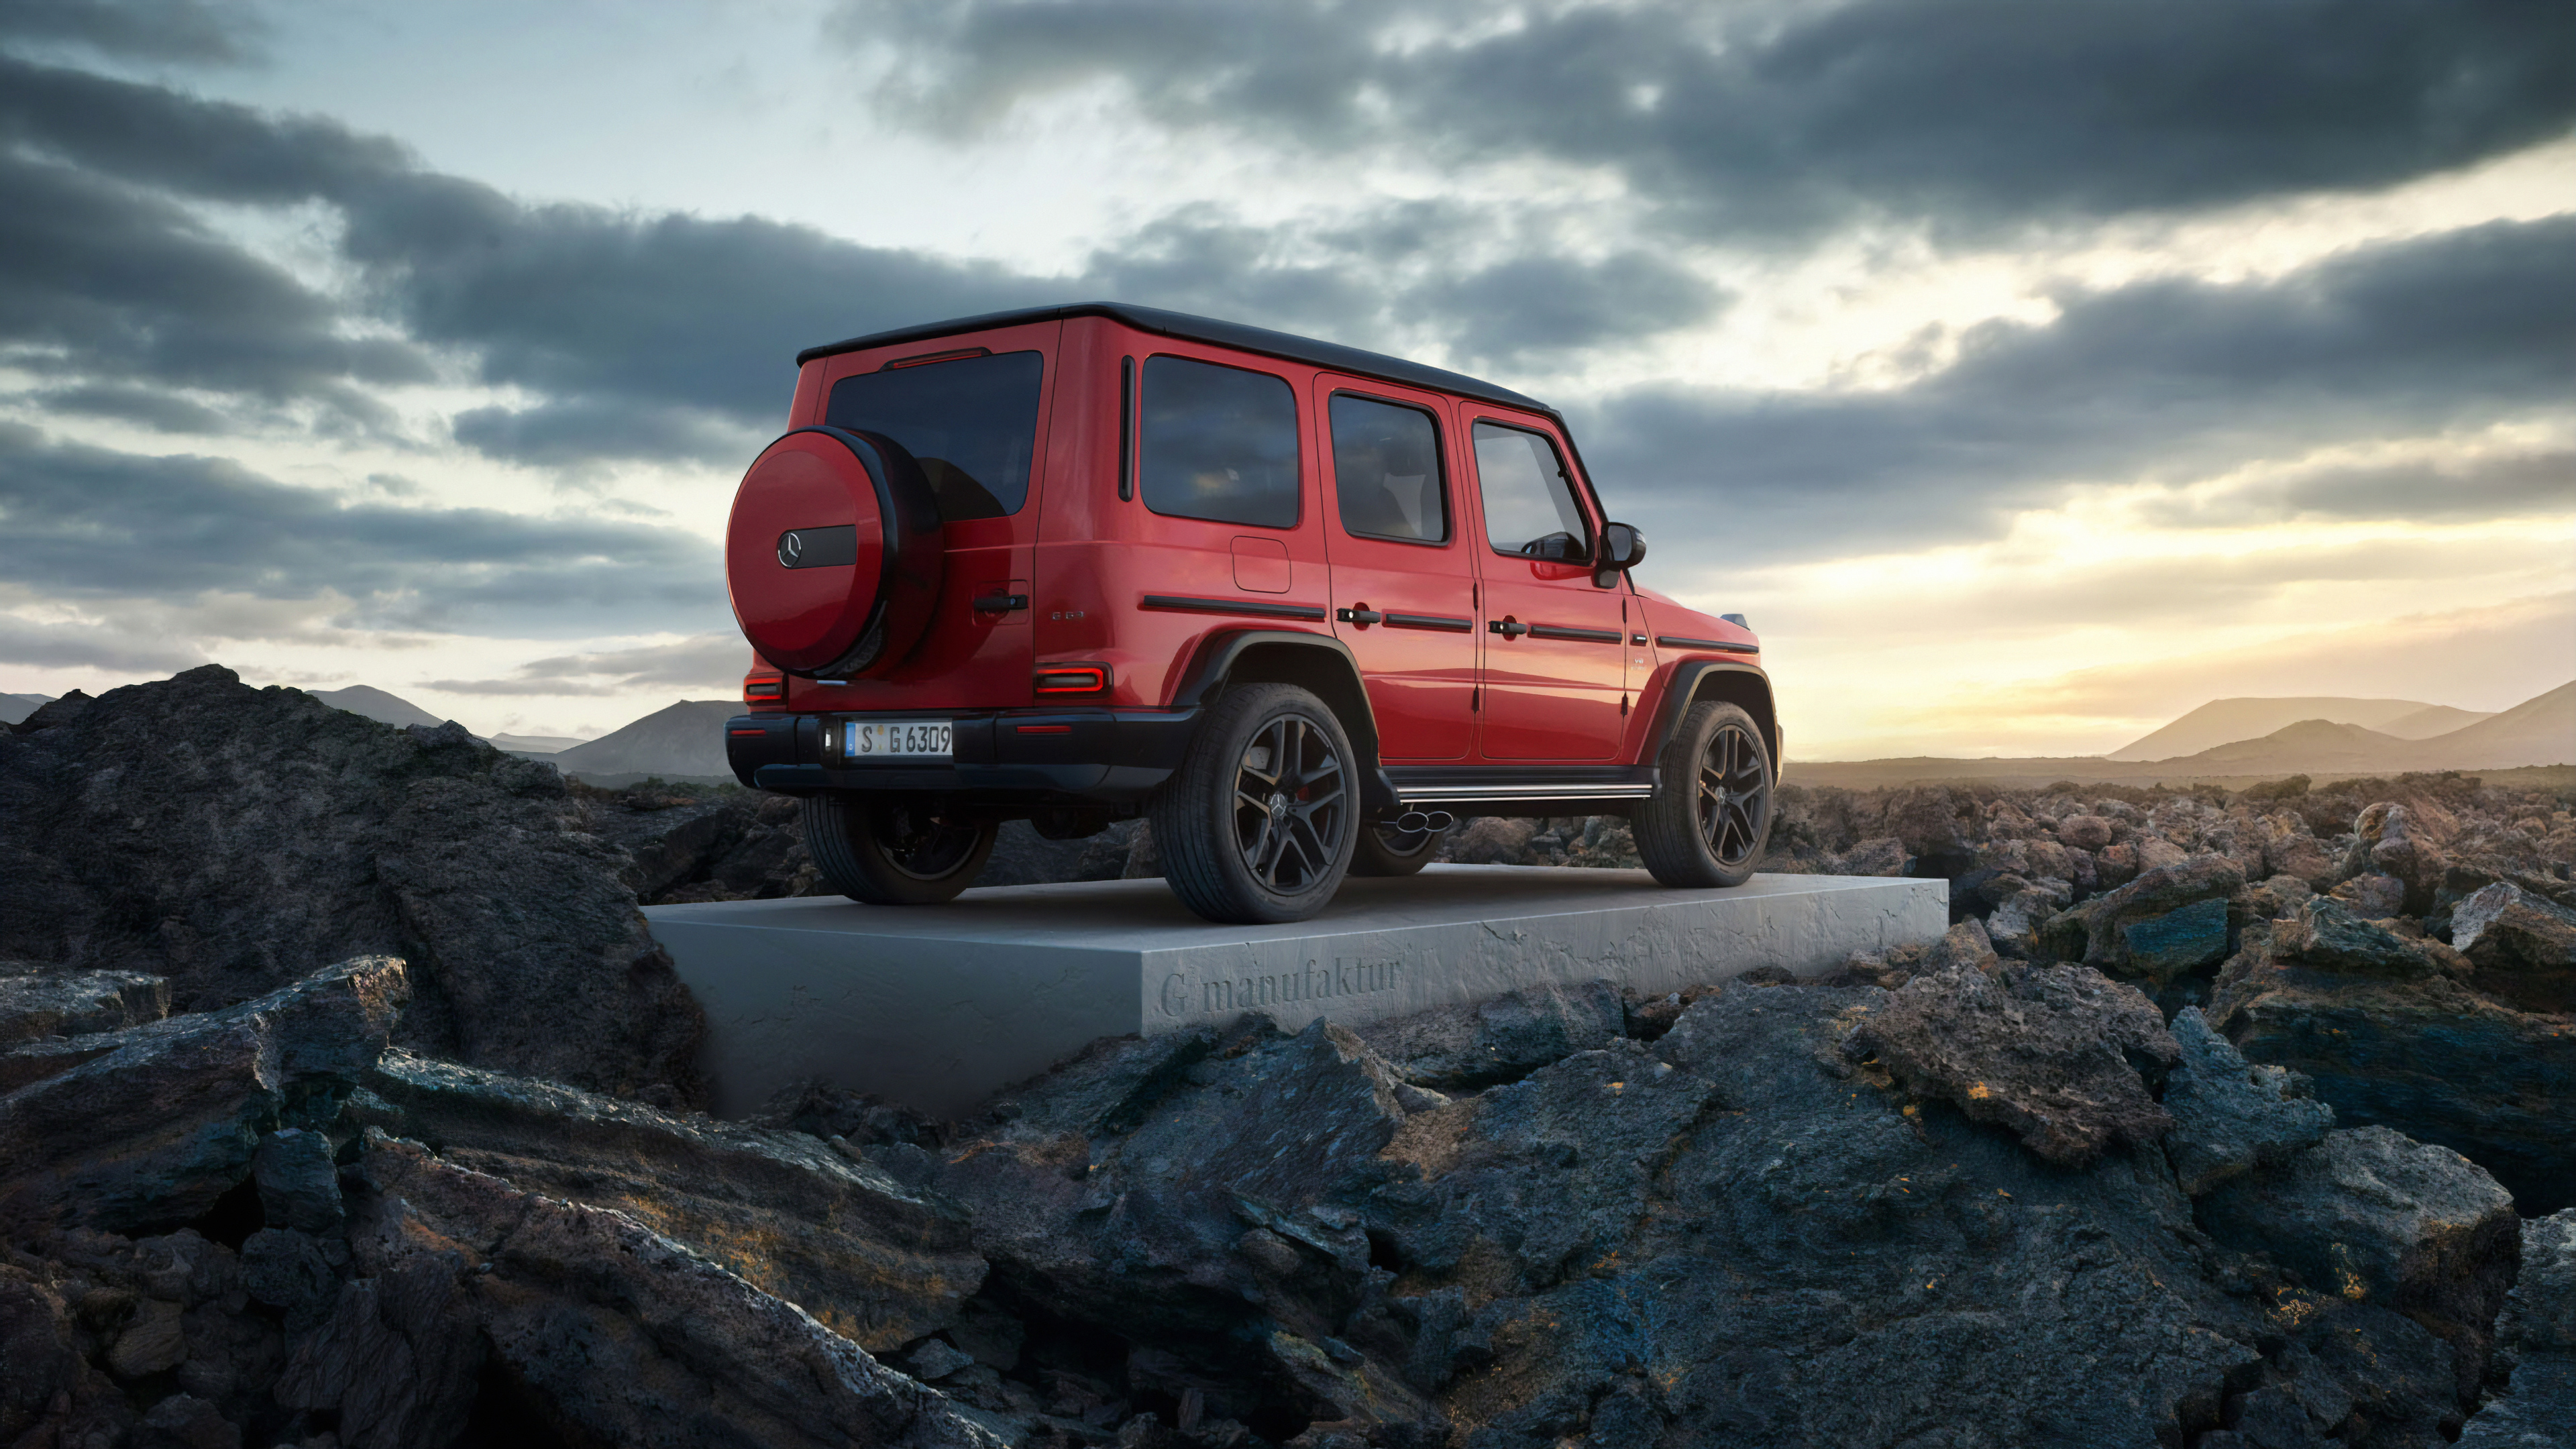 Mercedes G Wagon 4k, HD Cars, 4k Wallpapers, Images ...